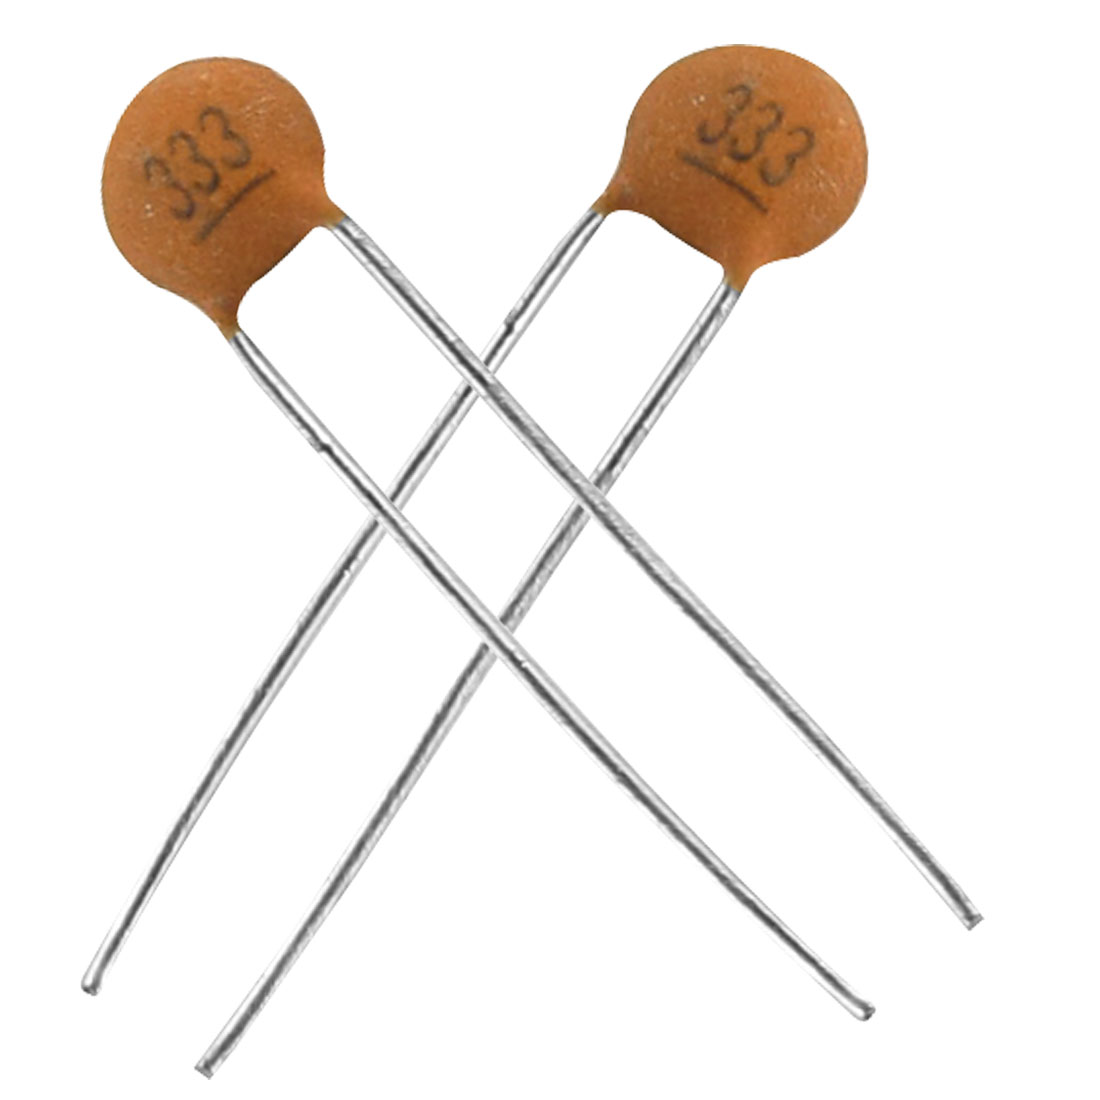 100 x 0.033uF 50V DIP Low Voltage Ceramic Disc Capacitors